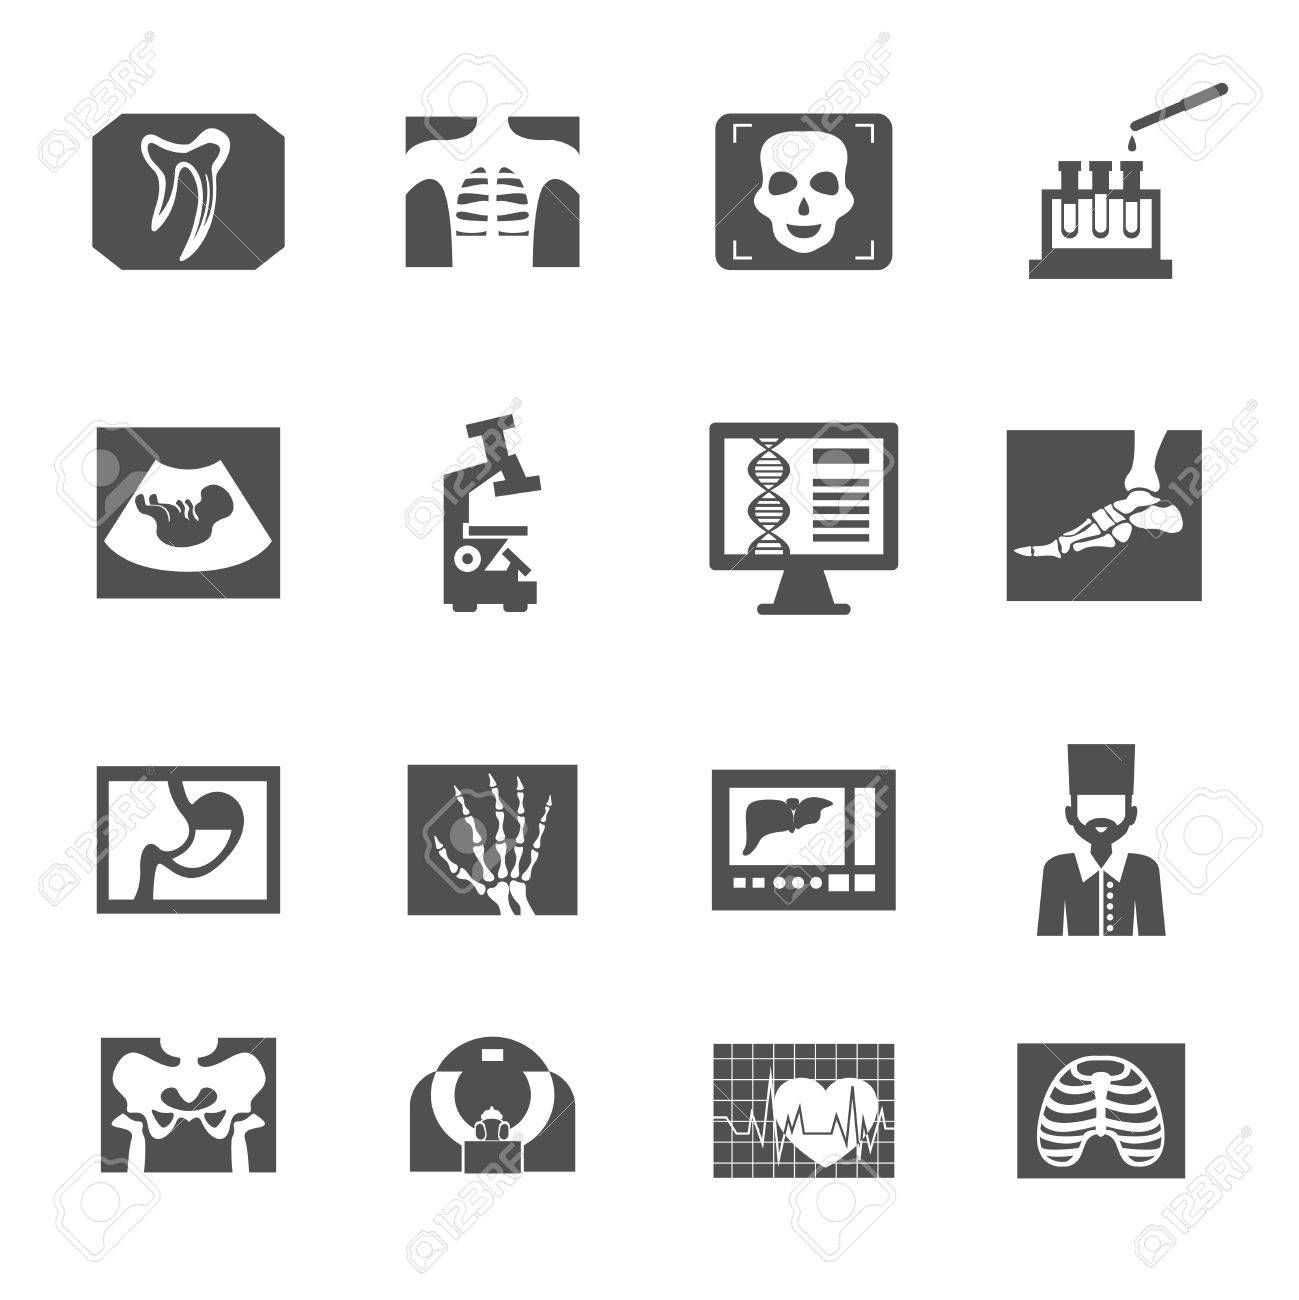 Ultrasound And X Ray Medical Equipment Icons Black Set